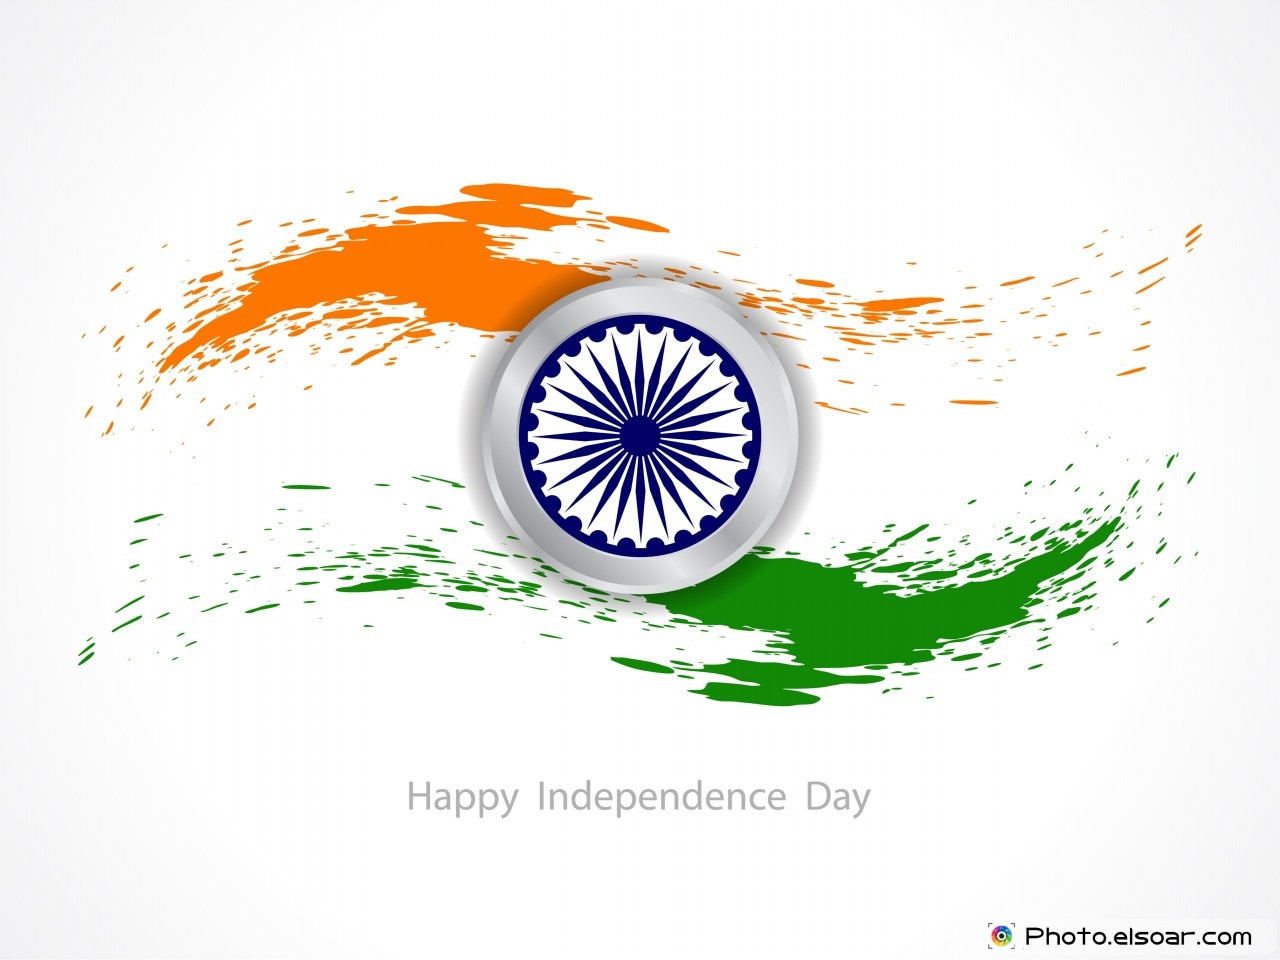 Independence Day India 2015 Wallpapers 1280x960